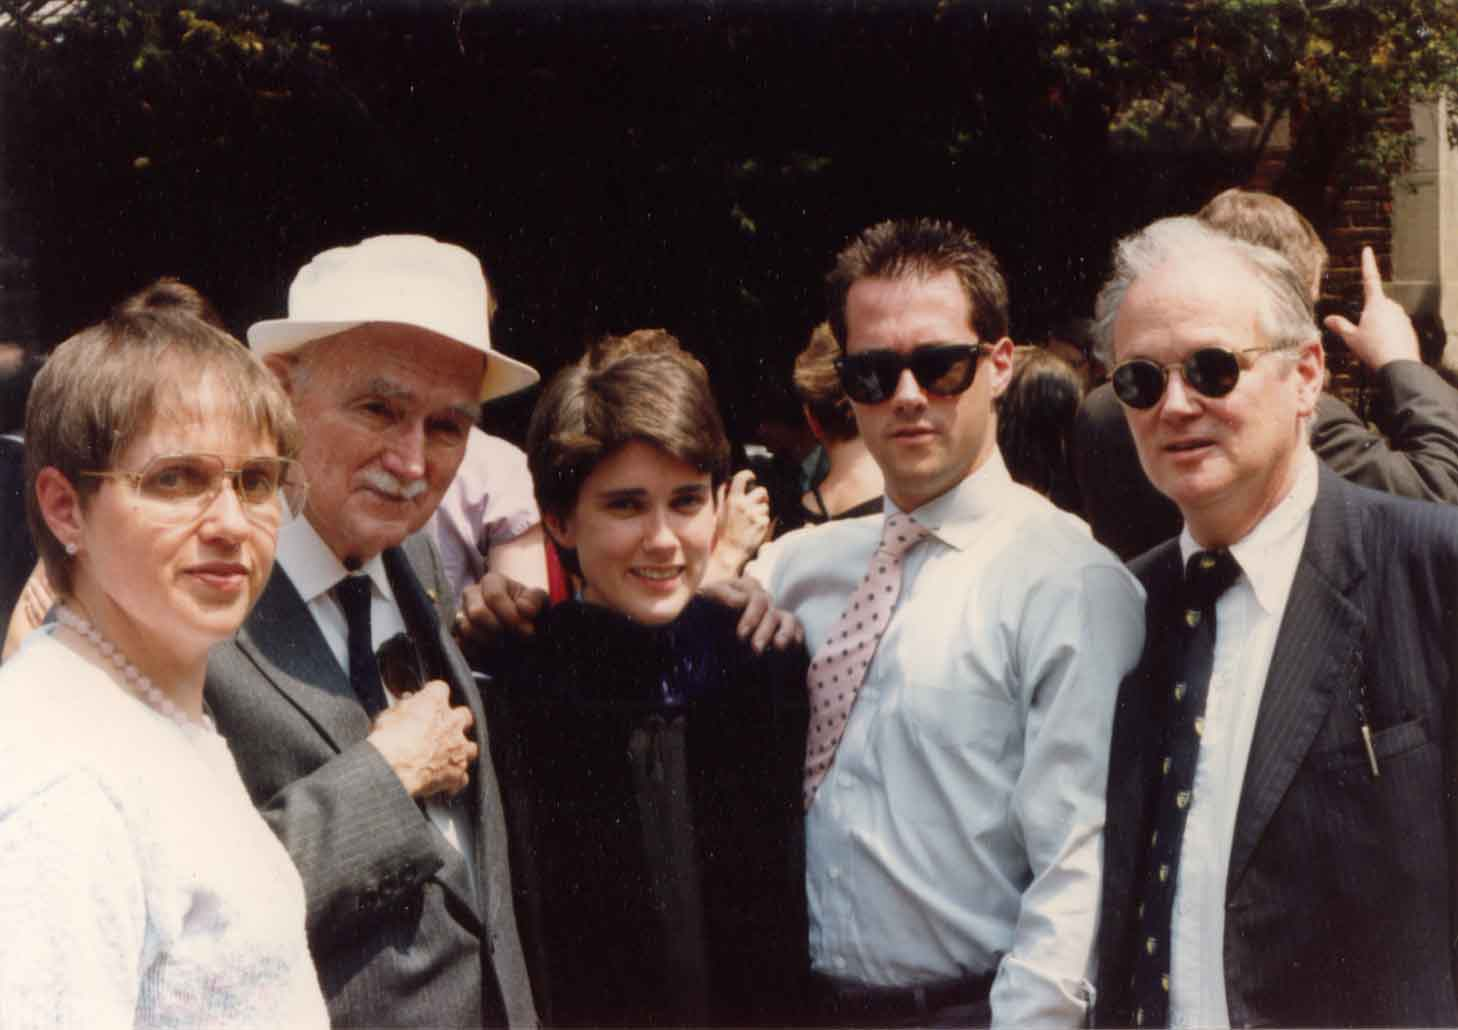 Image: 5 white people posing in front of a building. Mom (brown/gray hair and glasses in a white sweater); older man in suit and white fishing hat; me (short brown hair; graduation gown); younger man in spiked hair with sunglasses in a shirt and tie, and slightly older man in a suit and tie, also with sunglasses.